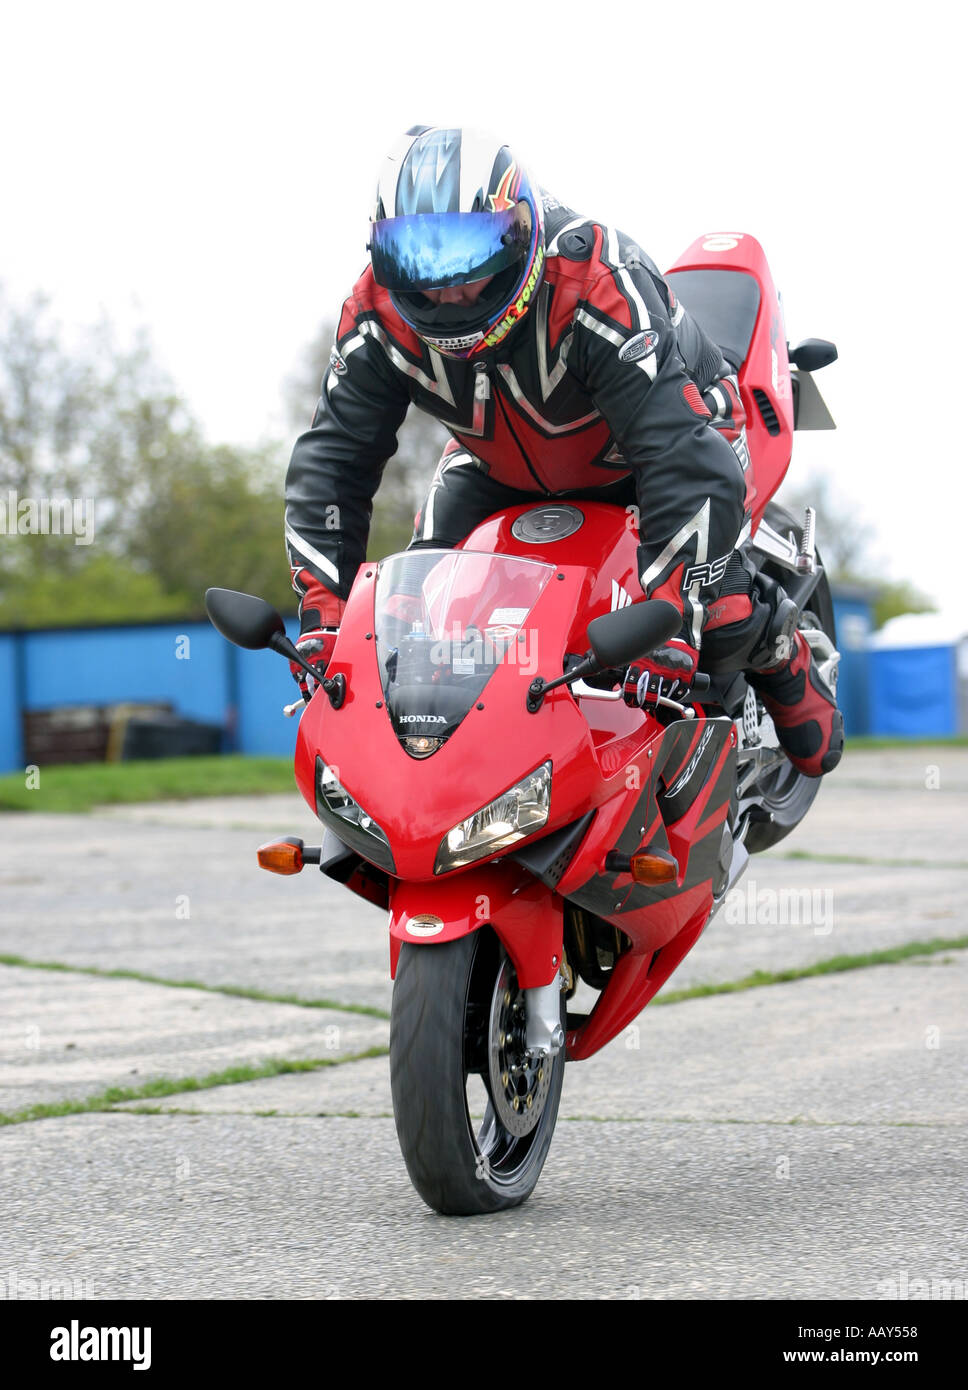 A stuntman pulls a stoppie on a Honda CBR600RR motorcycle - Stock Image